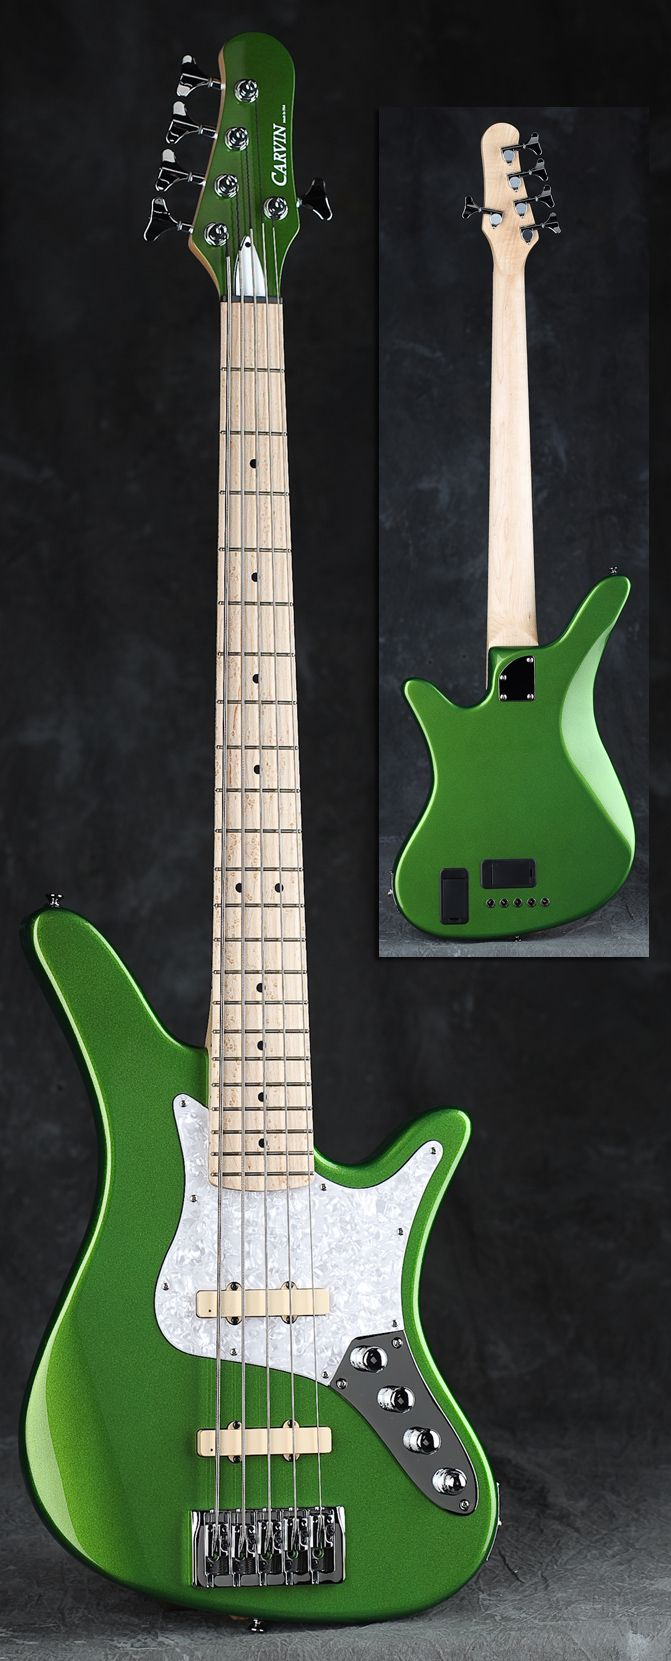 CARVIN SB5000 5-String Bass - Green Body / Bolt-On Maple Neck / 22-fret  Maple Board / Jazz Pickups & Preamp 18 Volt.